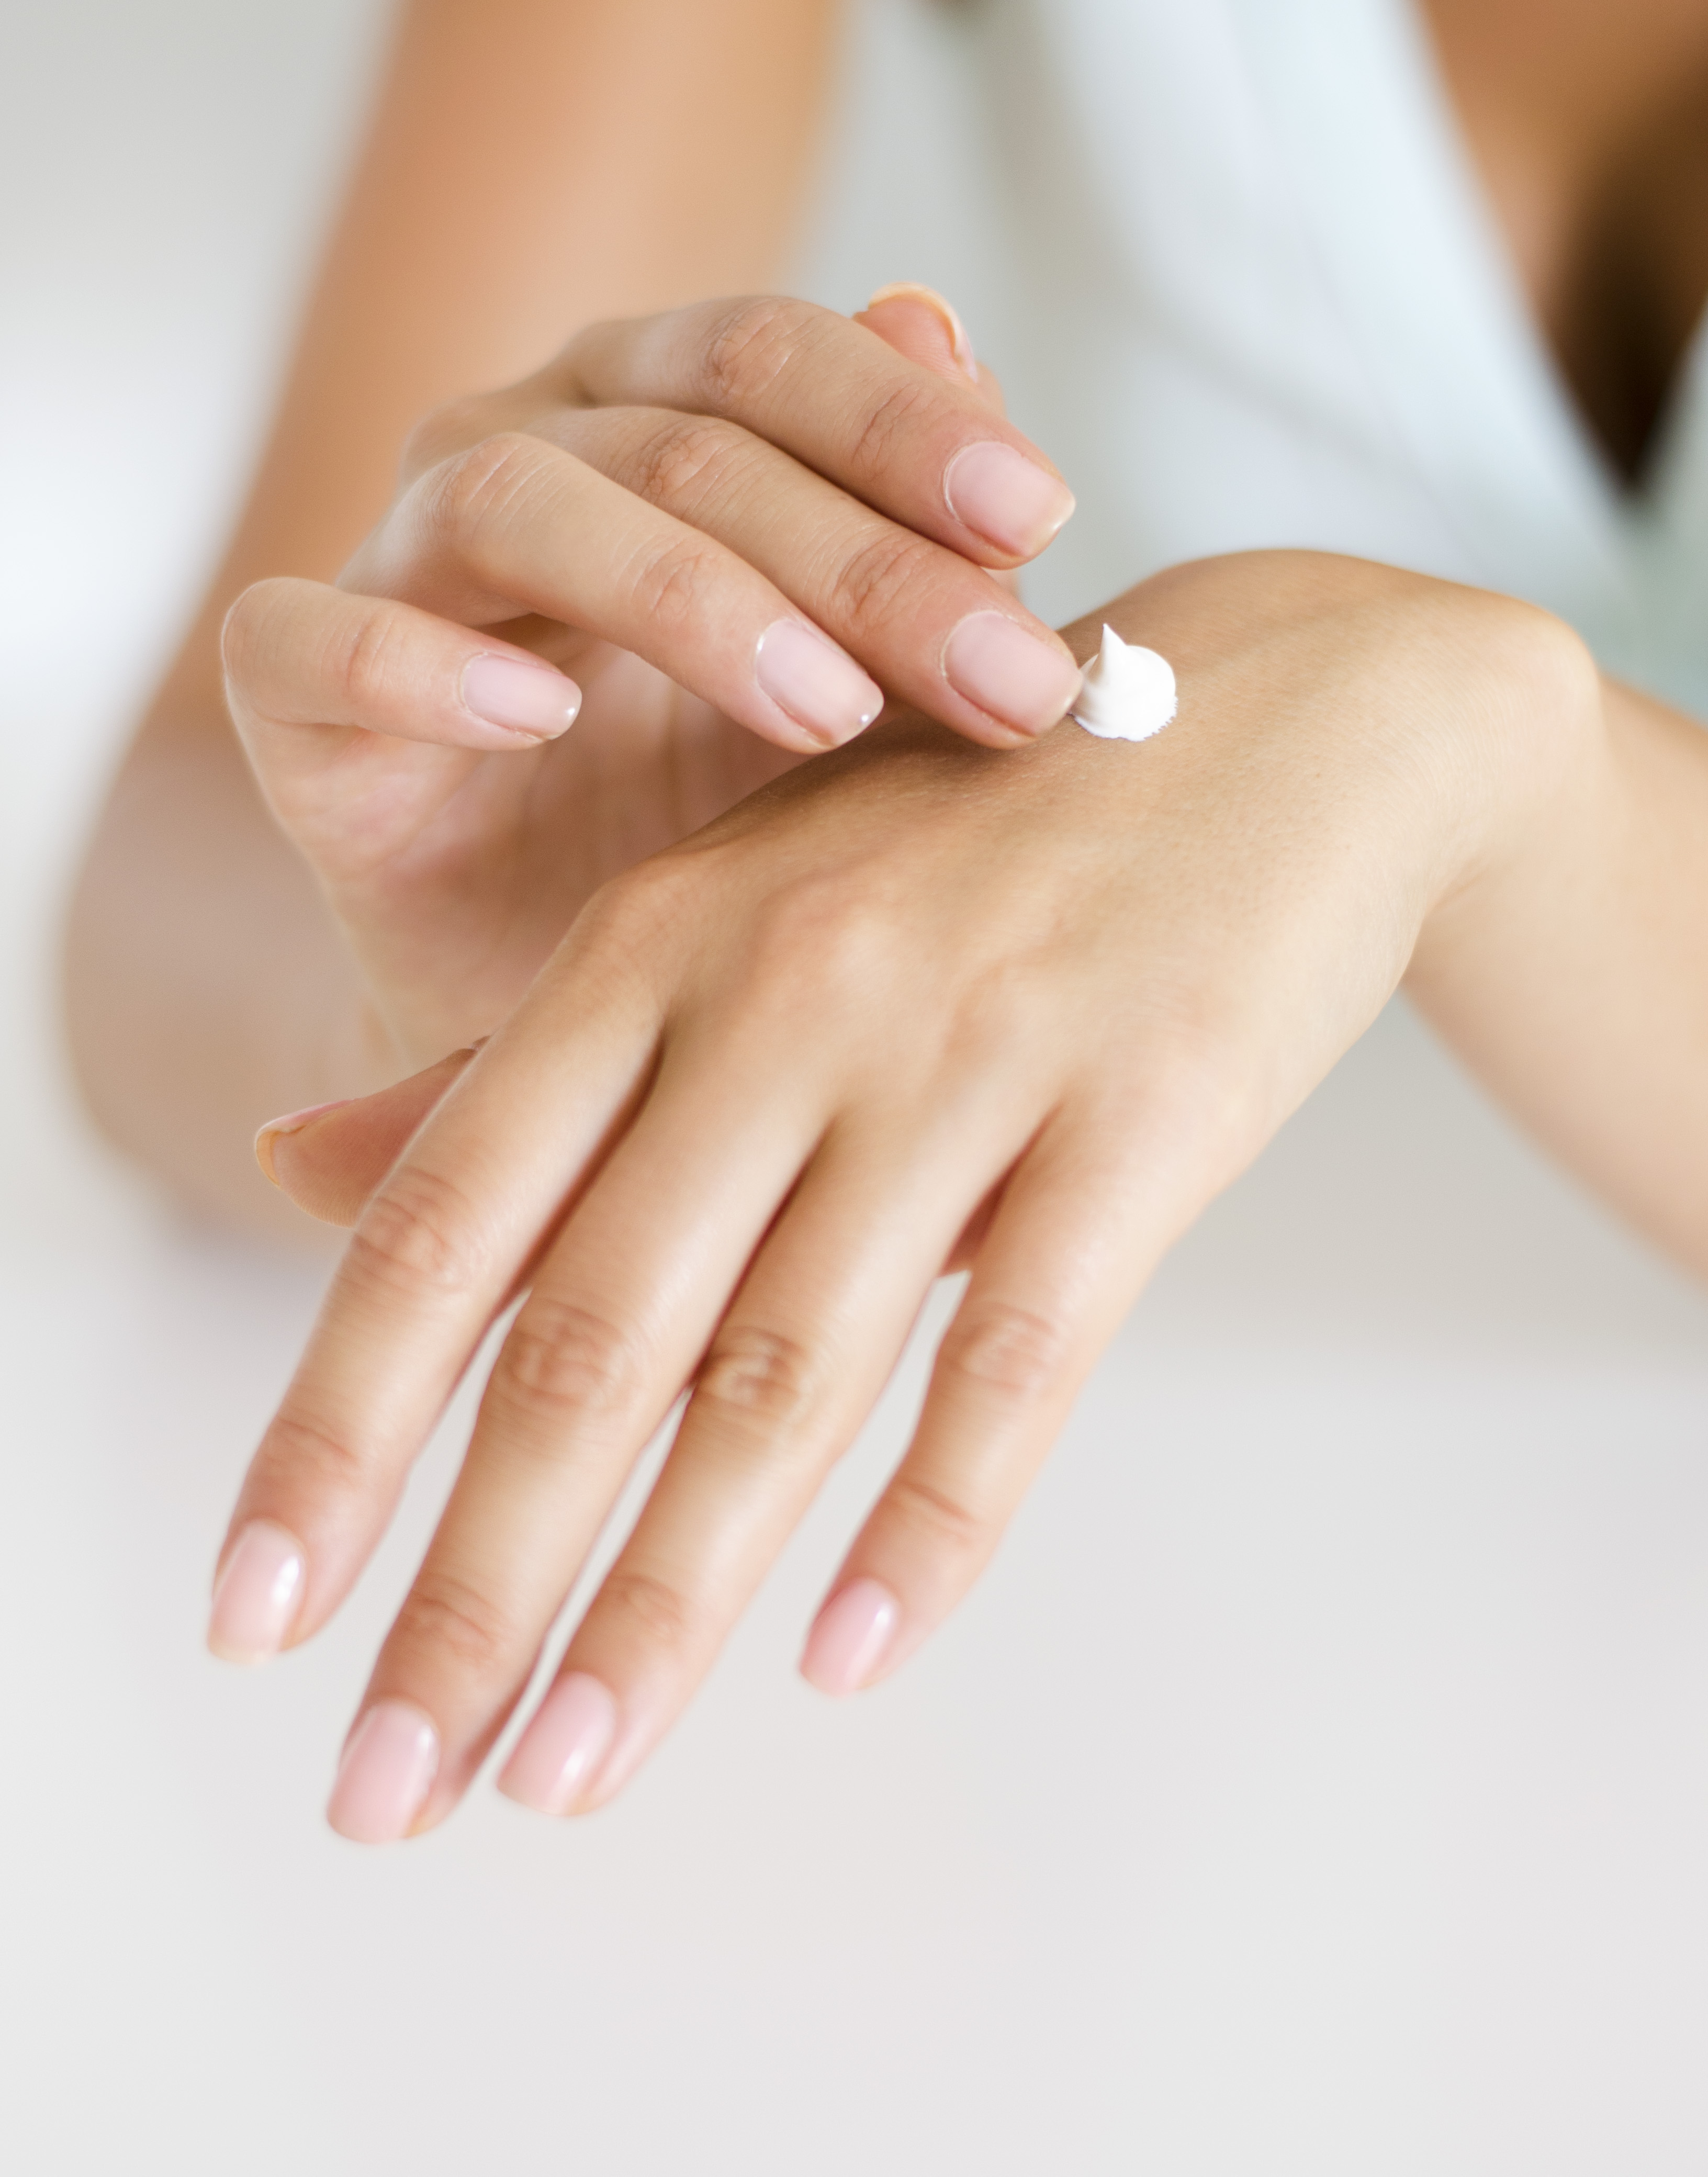 hands-with-cream